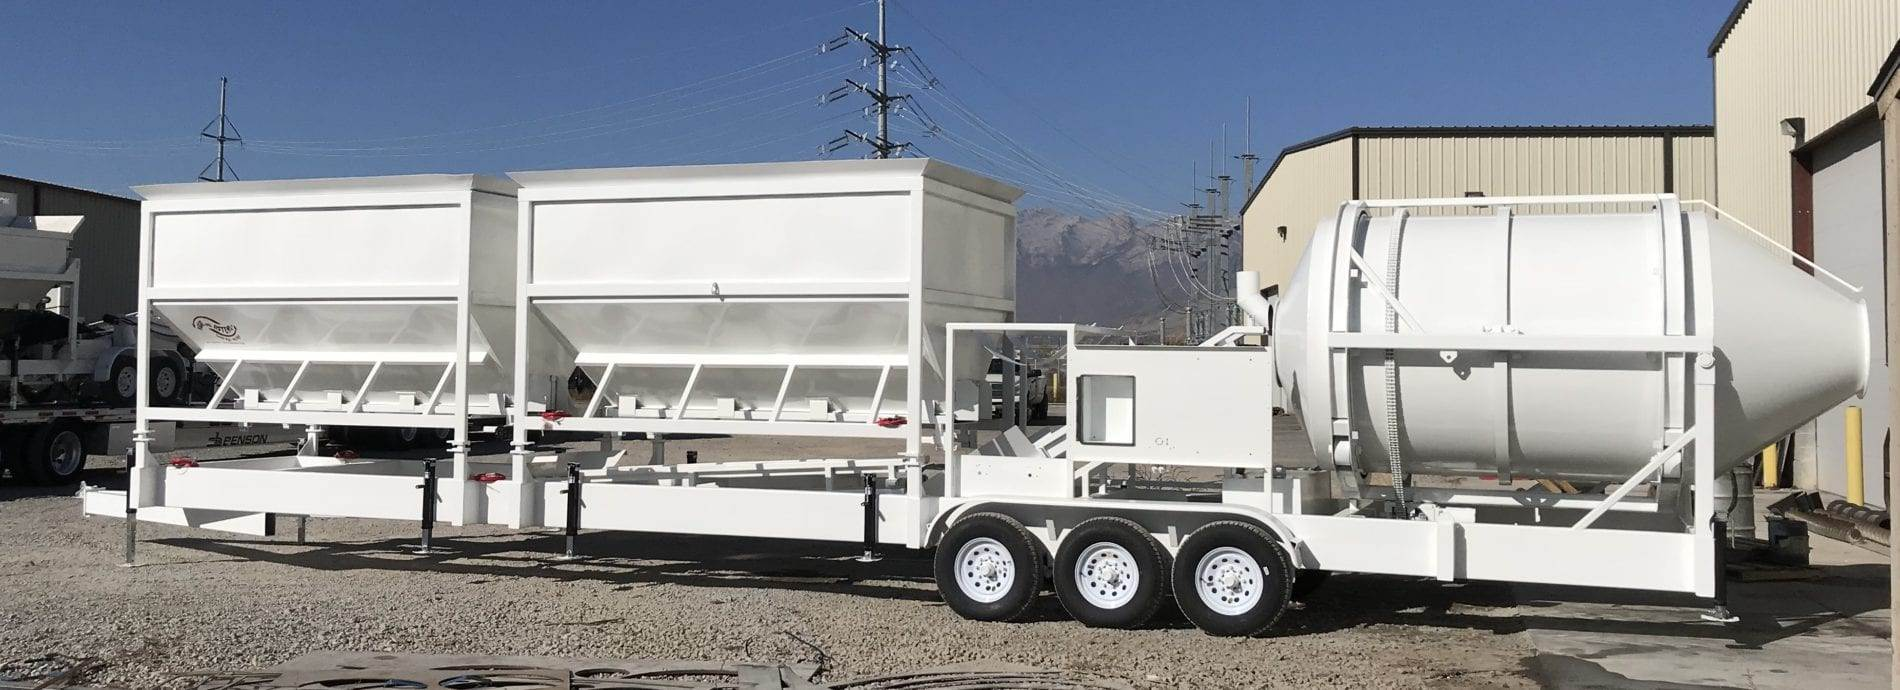 Portable Concrete Mixer Batching Plant 4 Cubic Yards Mix Right EZ 4-24-2 at Right Manufacturing Systems Inc. Lindon, Utah